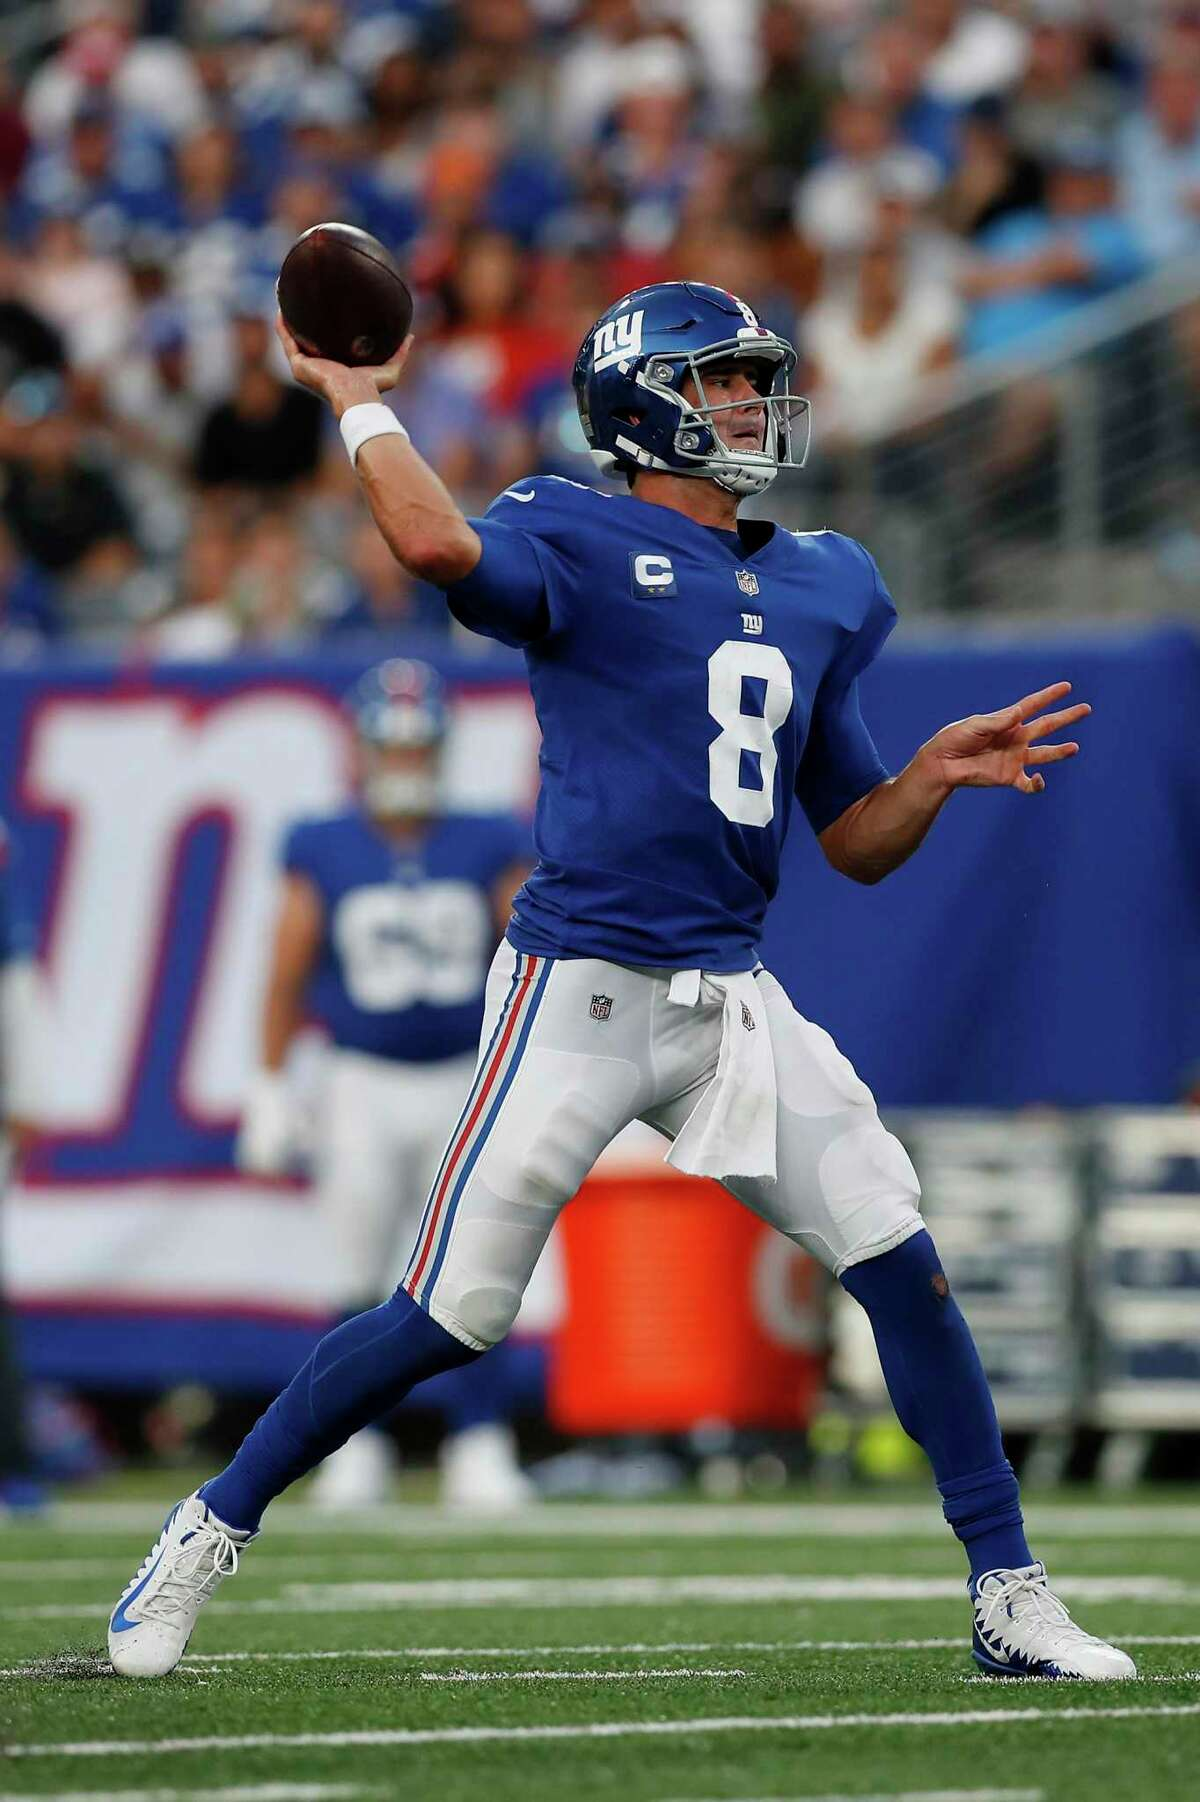 Daniel Jones and the Giants play at Washington at 5:20 p.m. Thursday (NFL Network/1050).